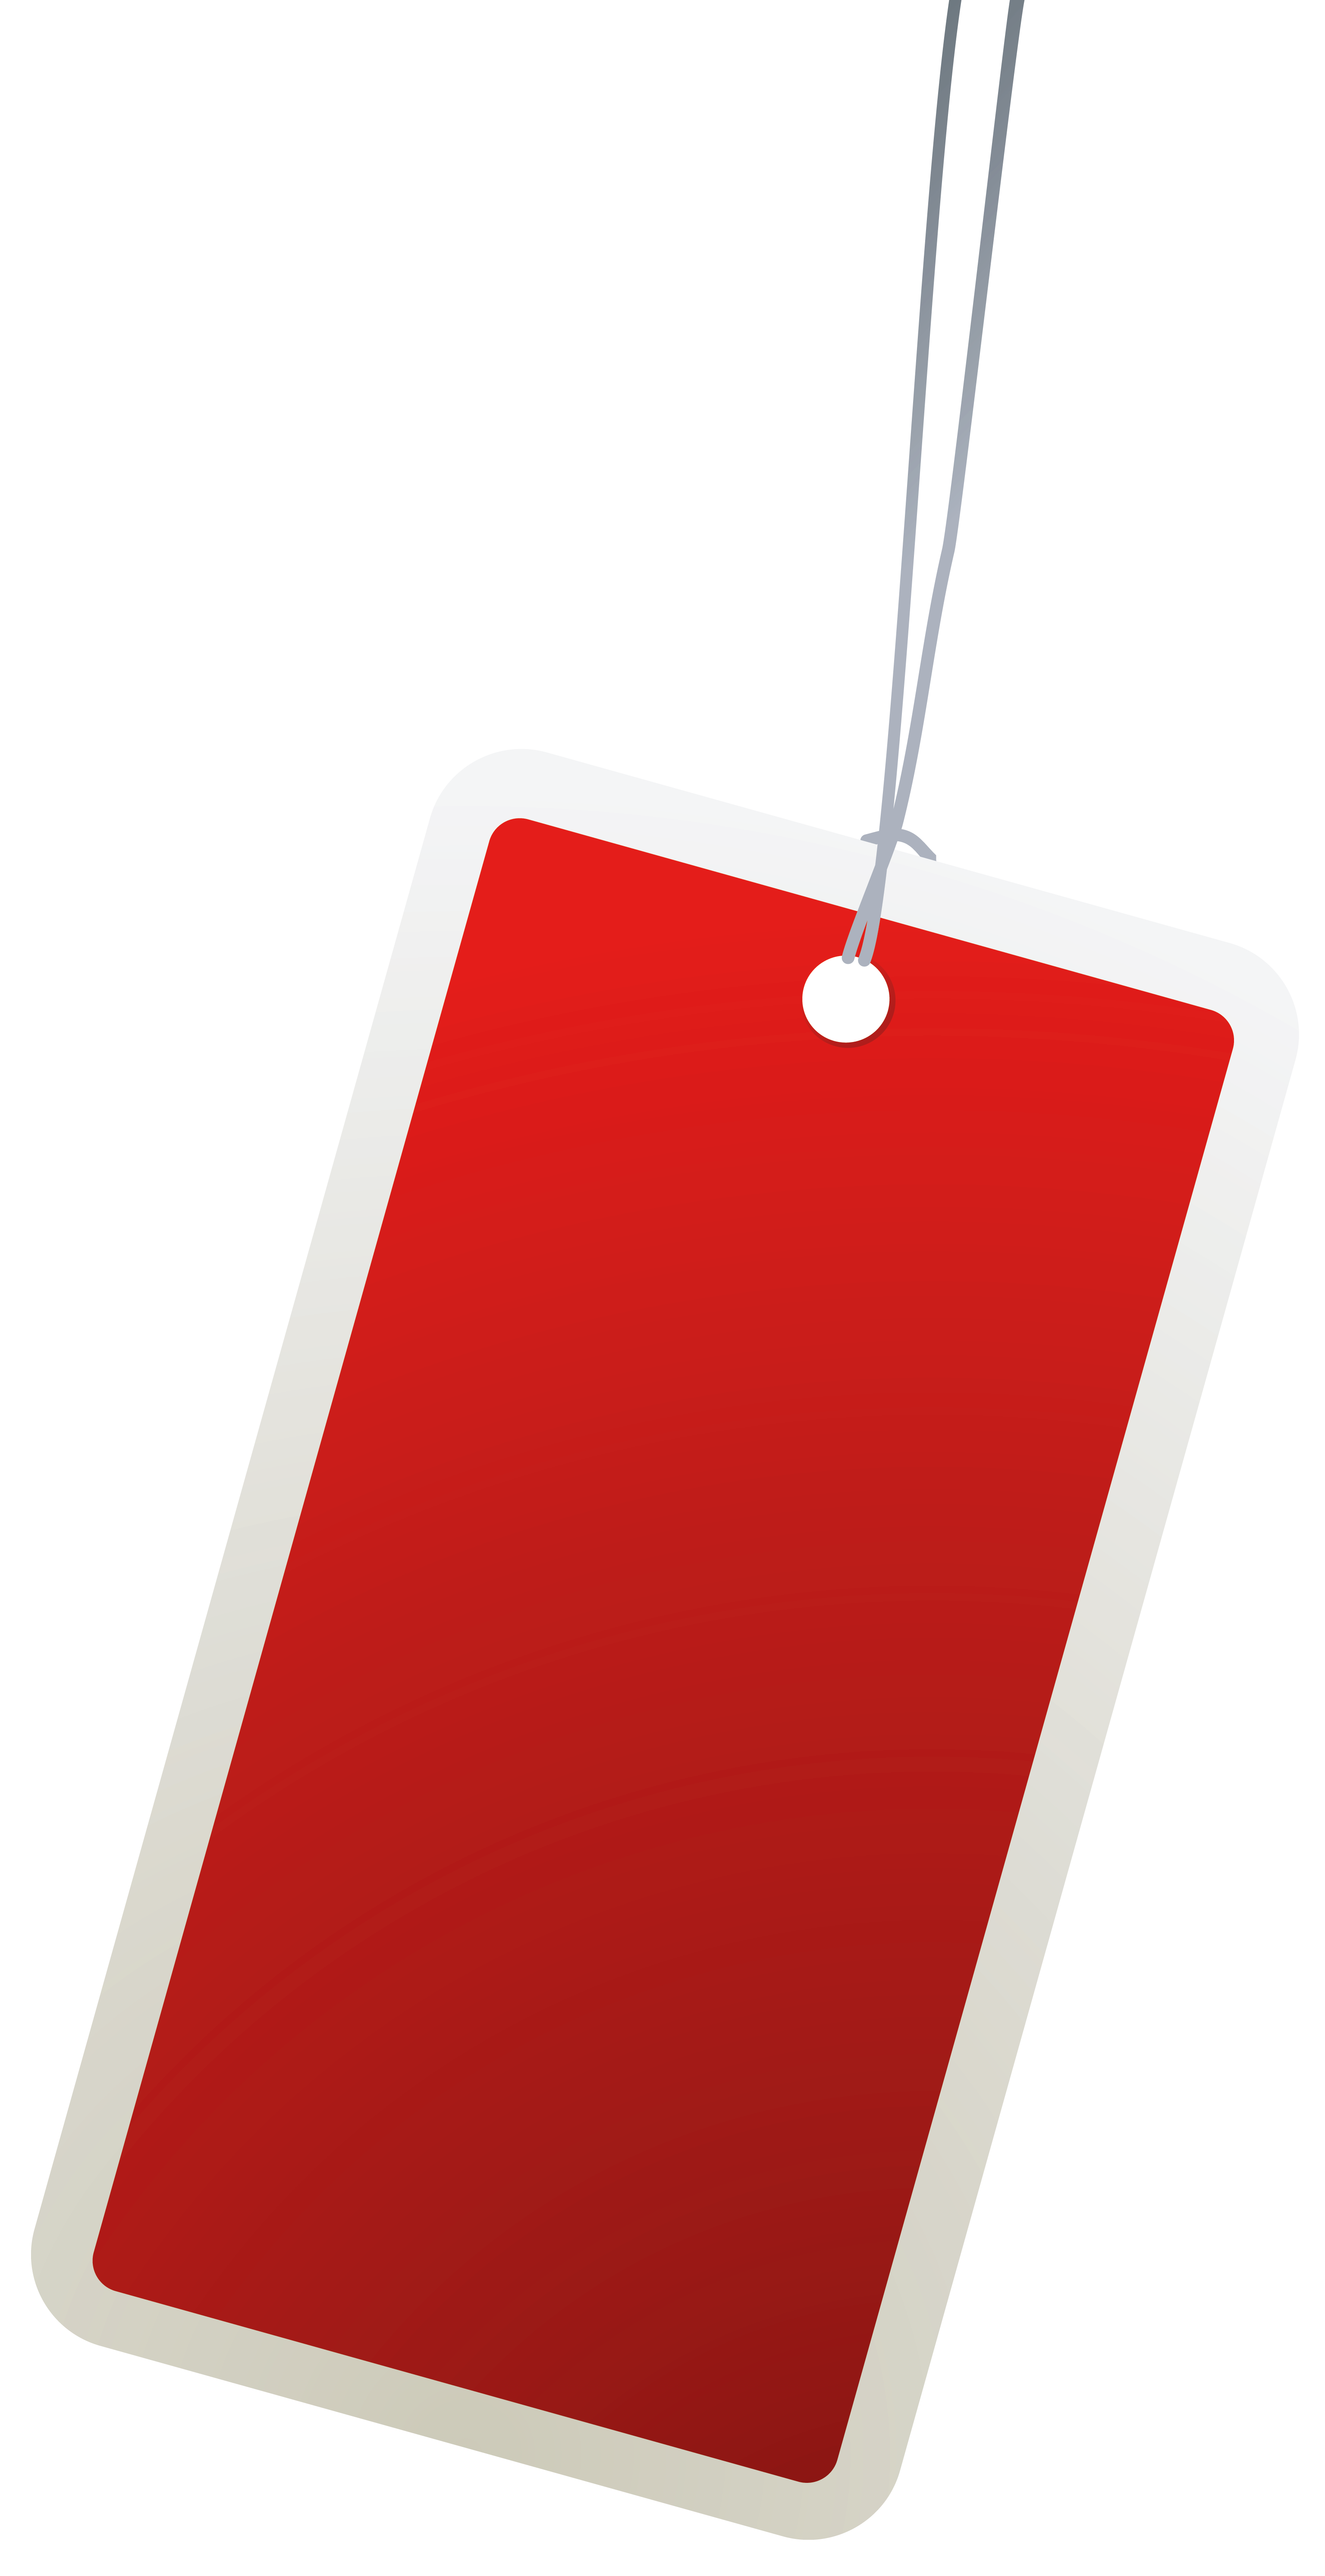 Paper clip art png. Label clipart red